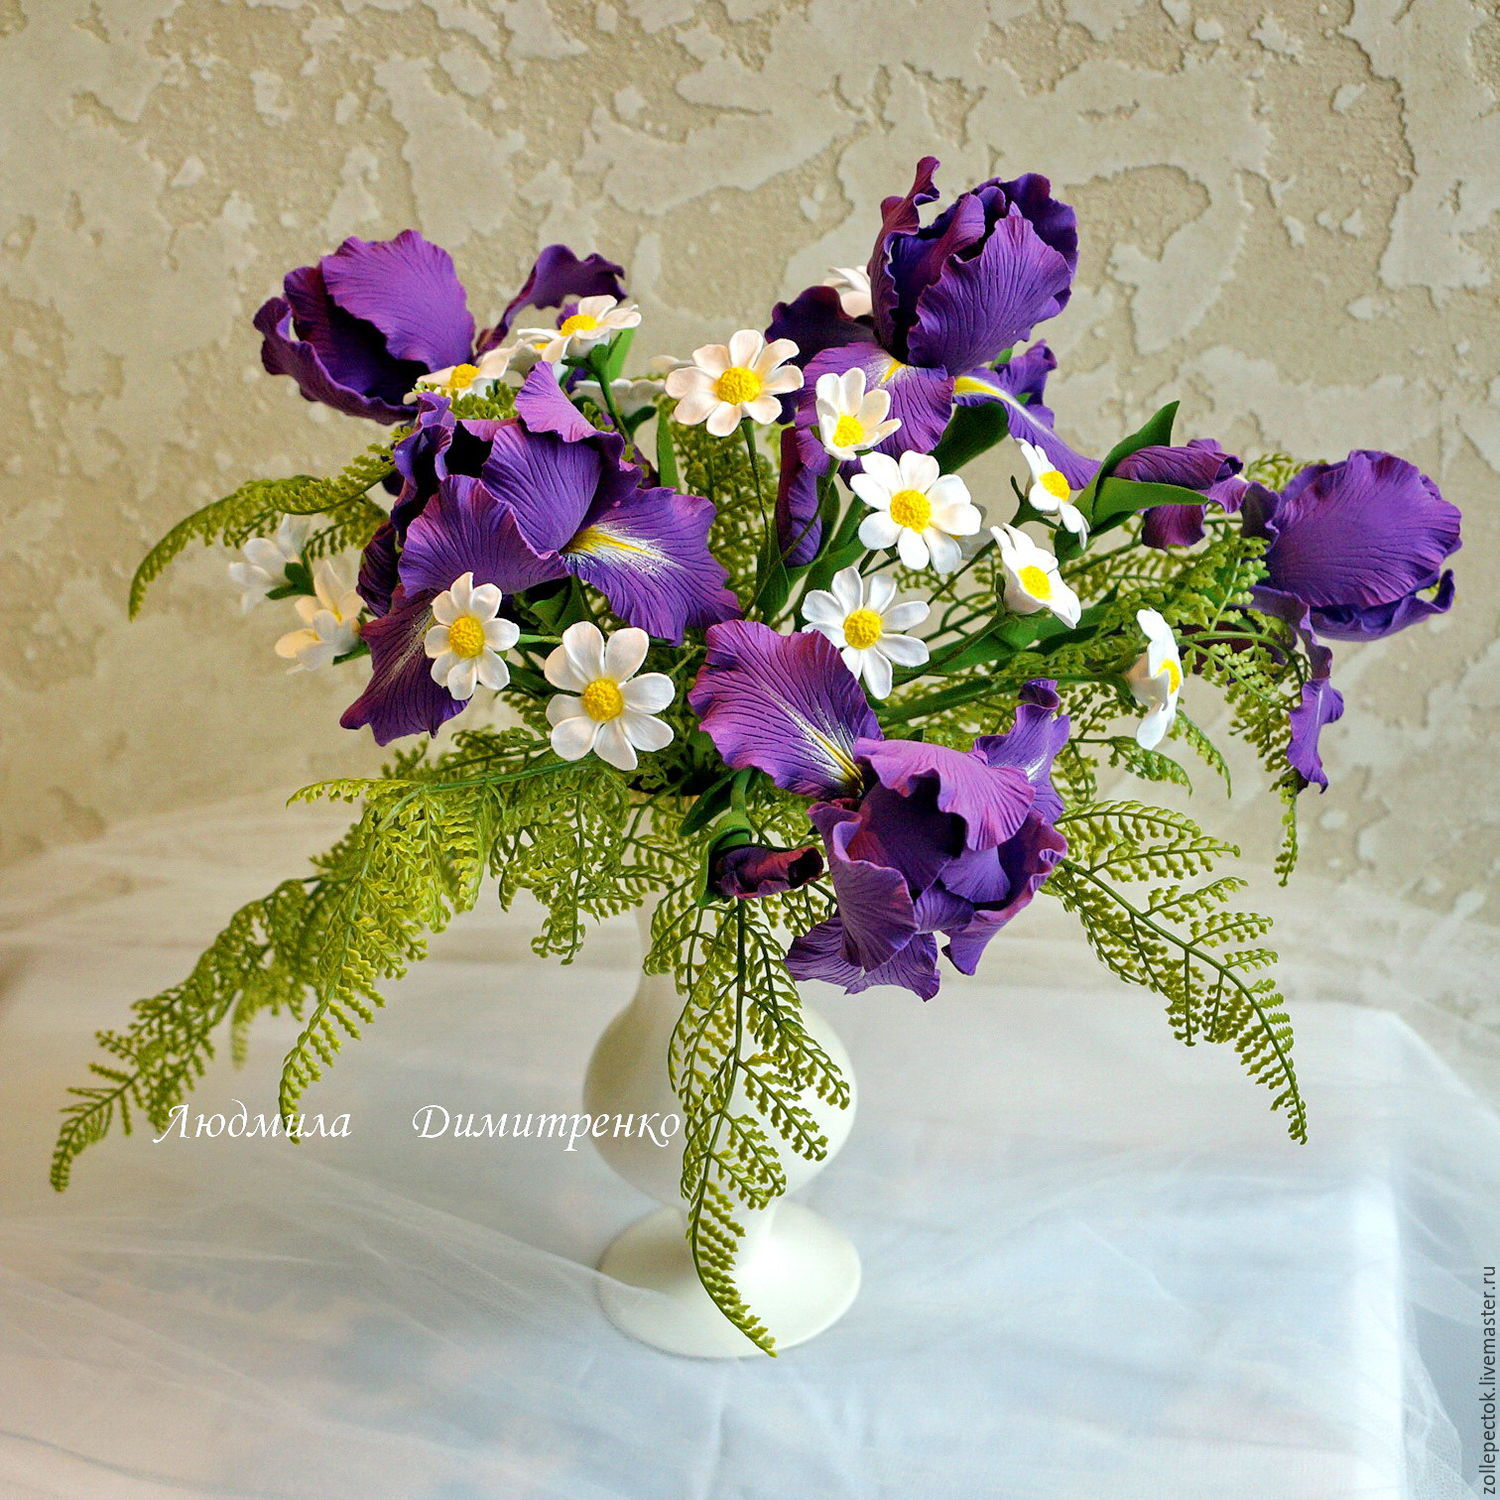 Bouquet Irises Daisies Shop Online On Livemaster With Shipping